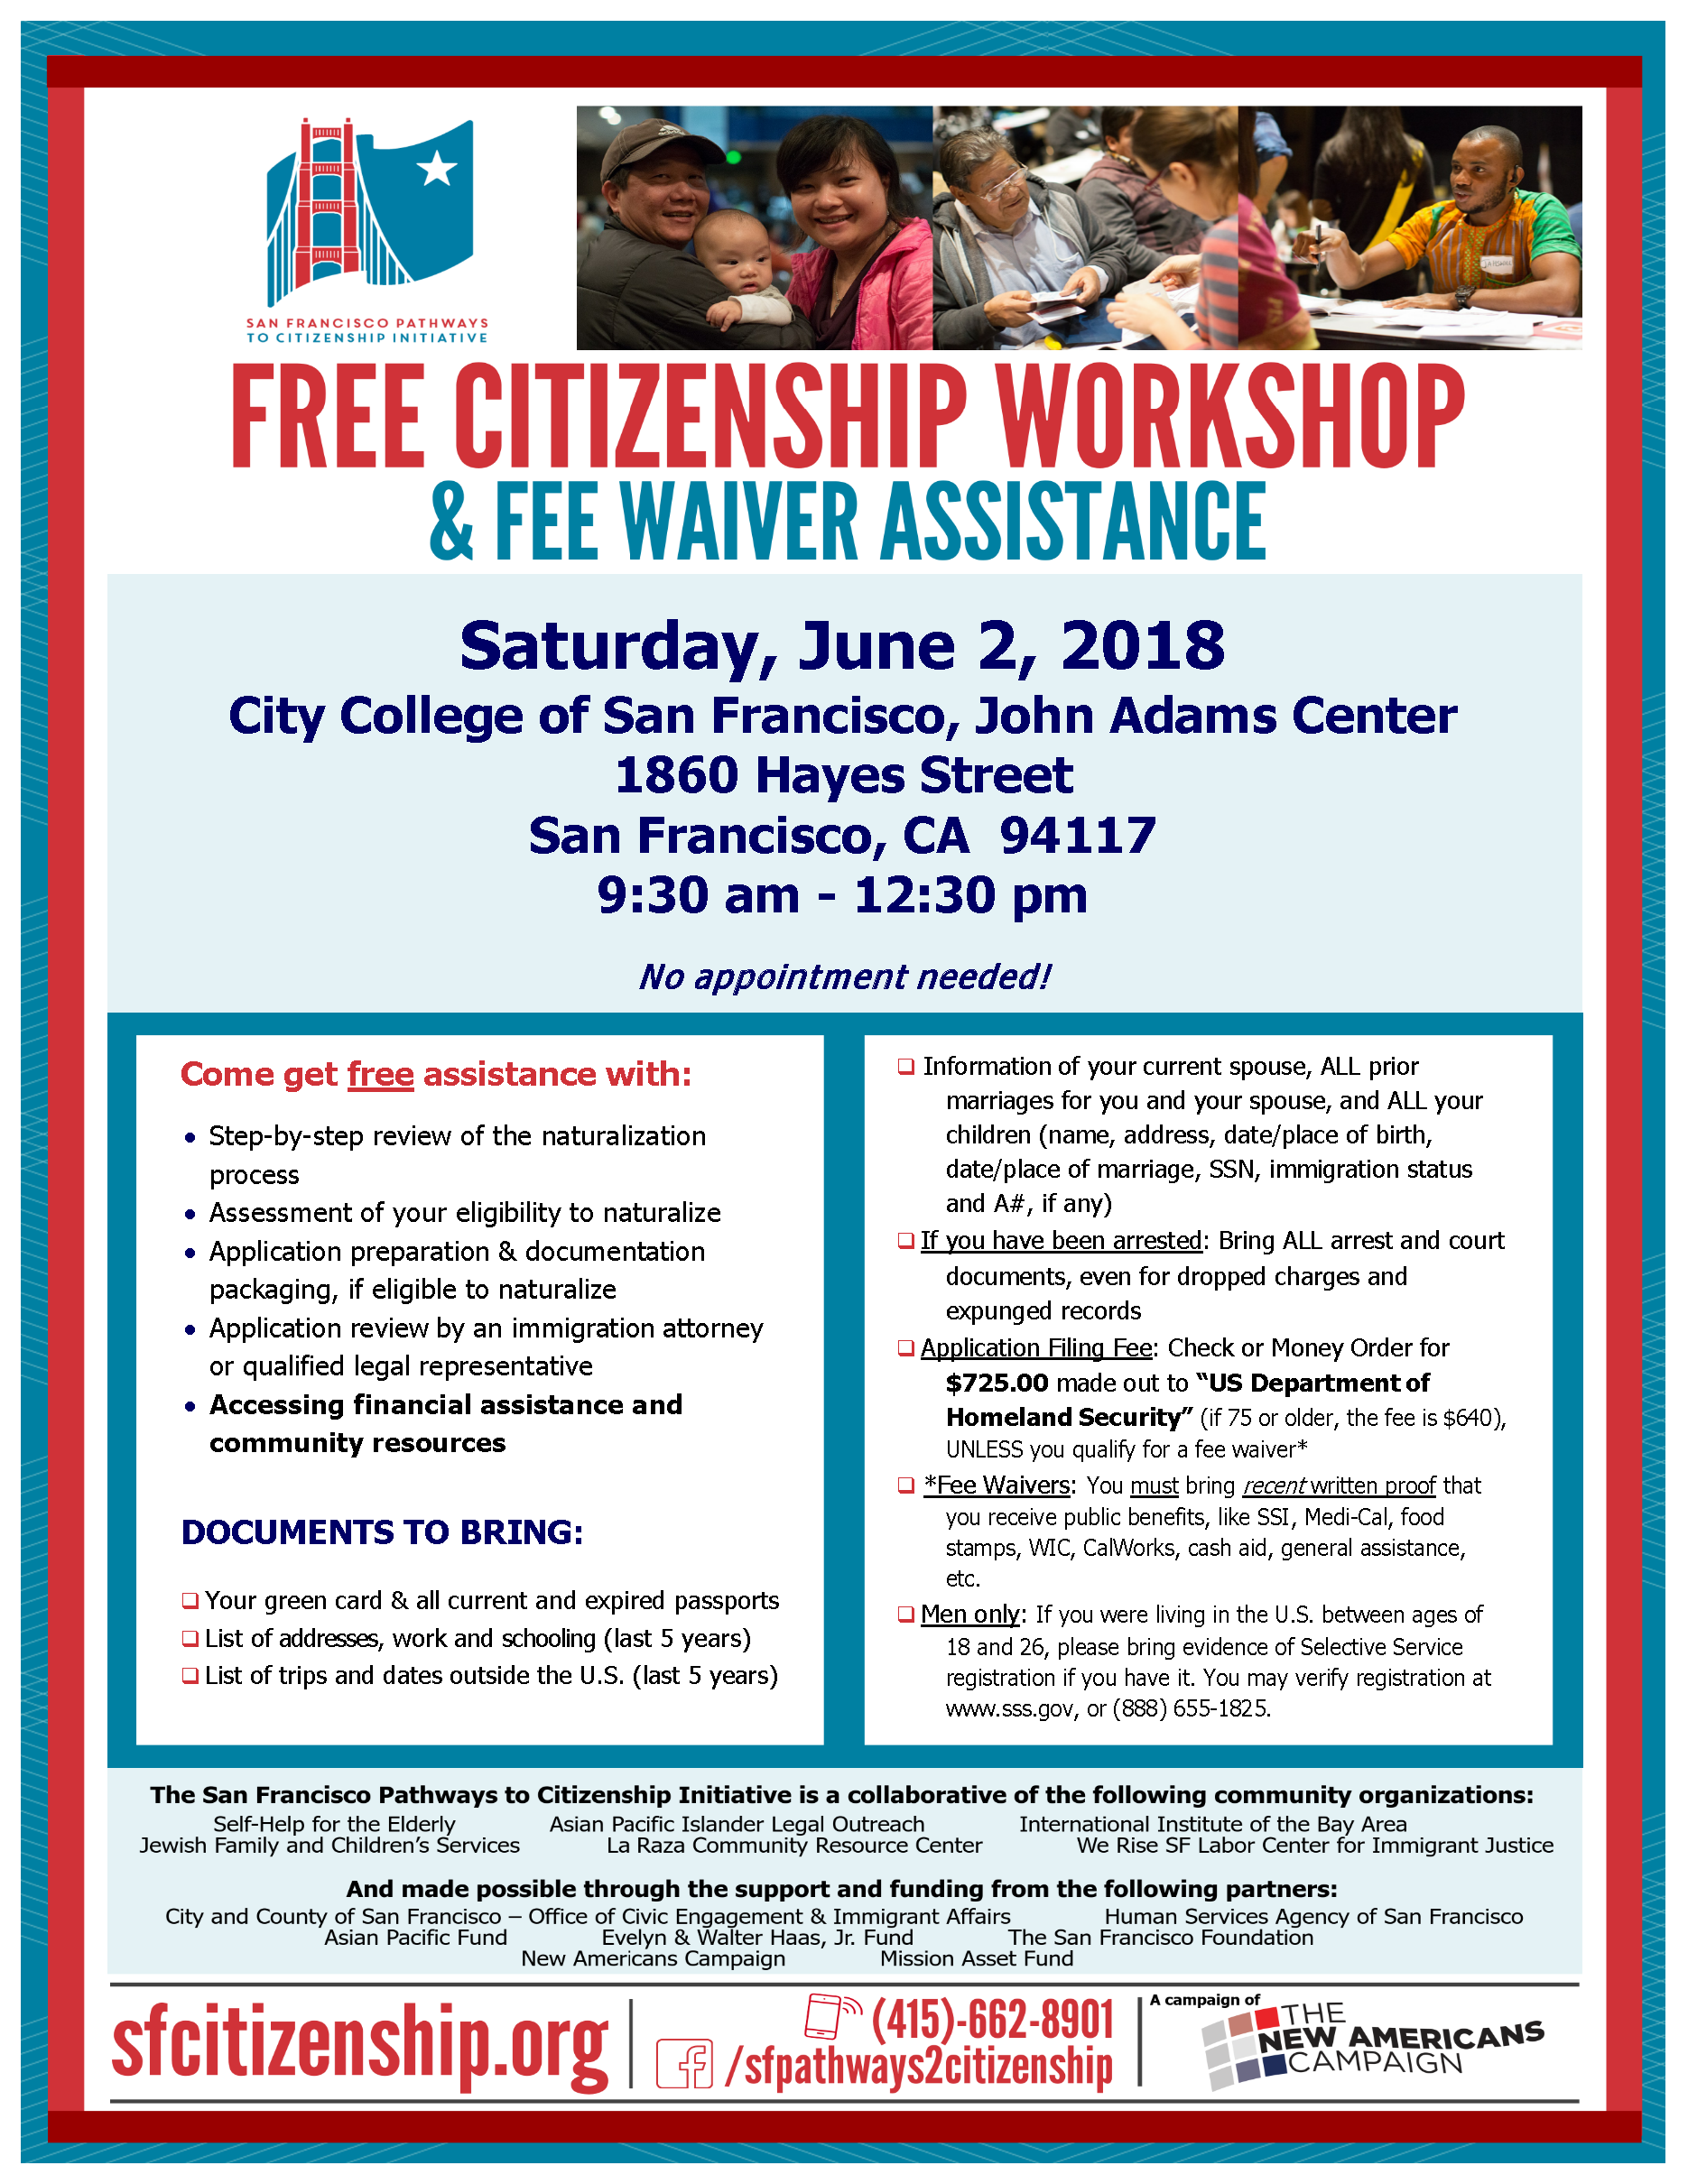 how to submit citizenship application online